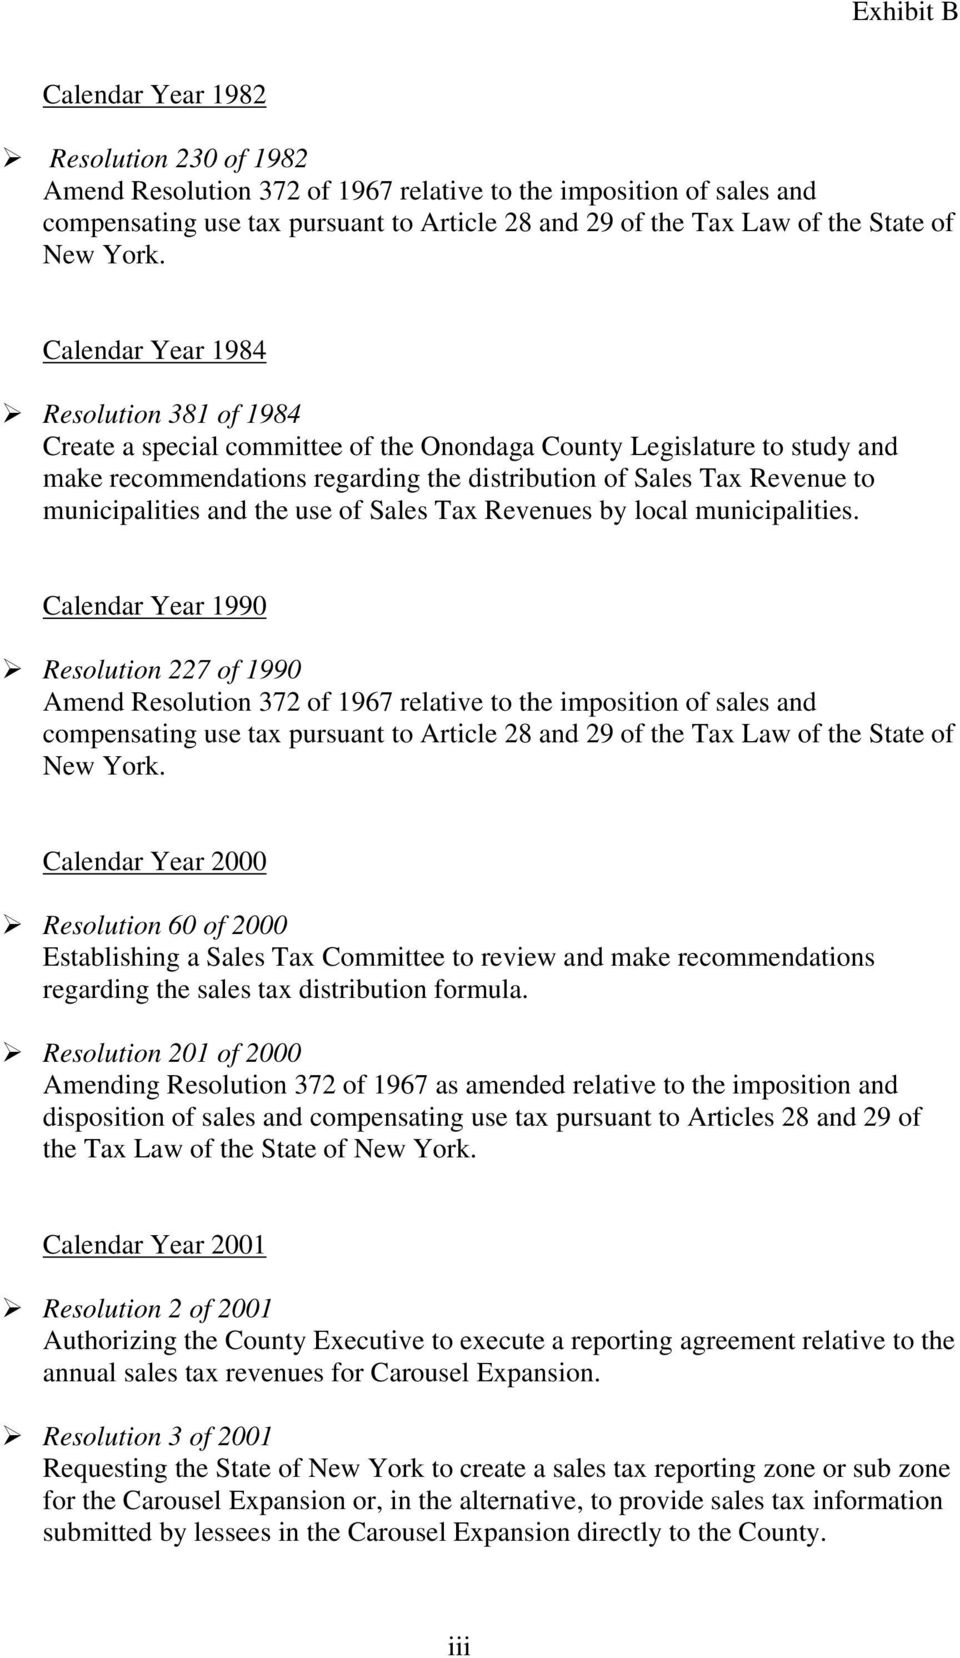 Calendar Year 1984 Resolution 381 of 1984 Create a special committee of the Onondaga County Legislature to study and make recommendations regarding the distribution of Sales Tax Revenue to